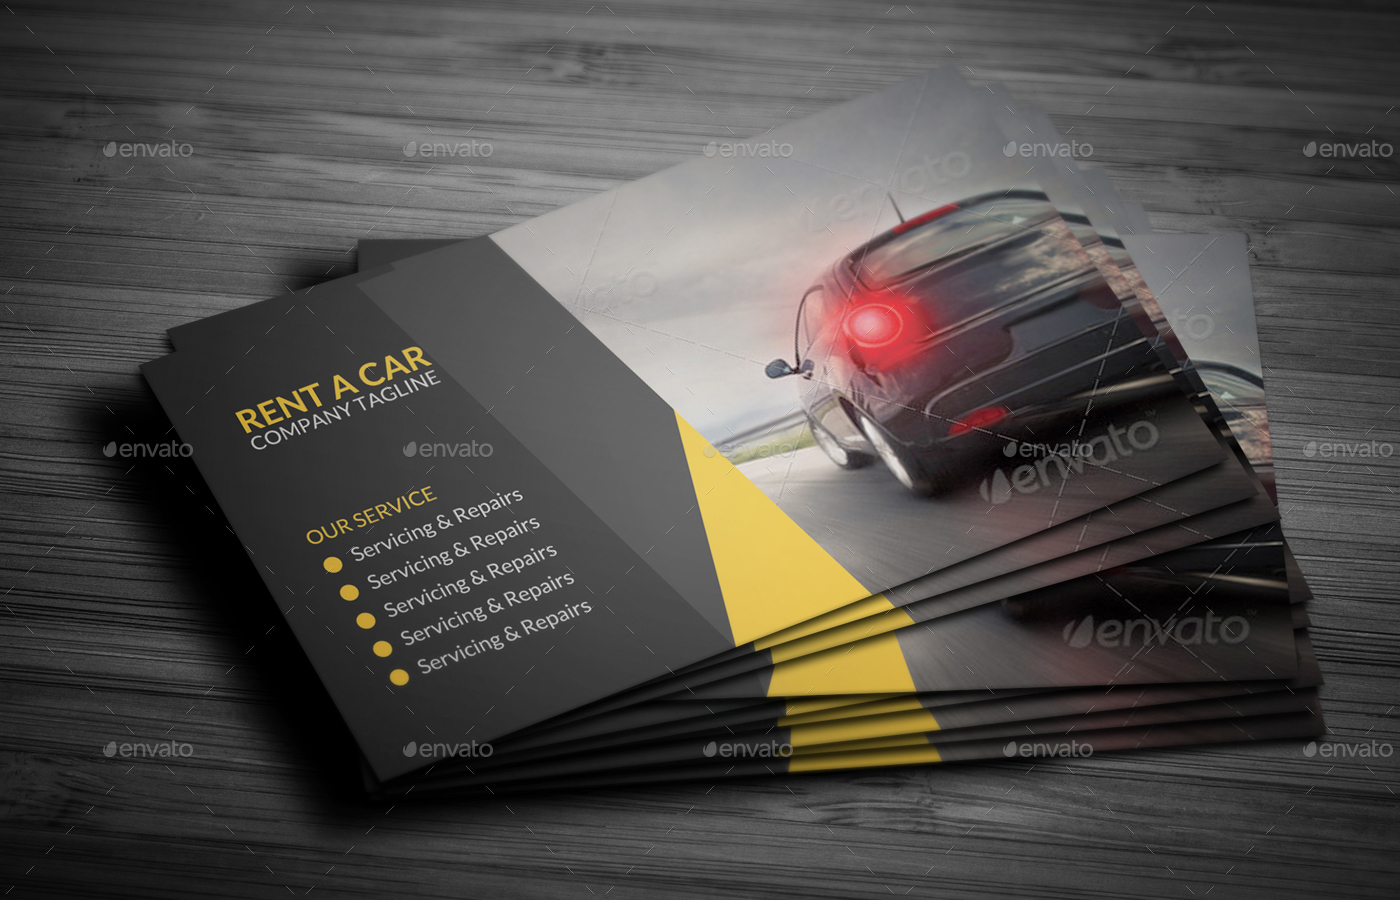 Rent a car business card by vejakakstudio graphicriver rent a car business card creative business cards preview01g preview02g colourmoves